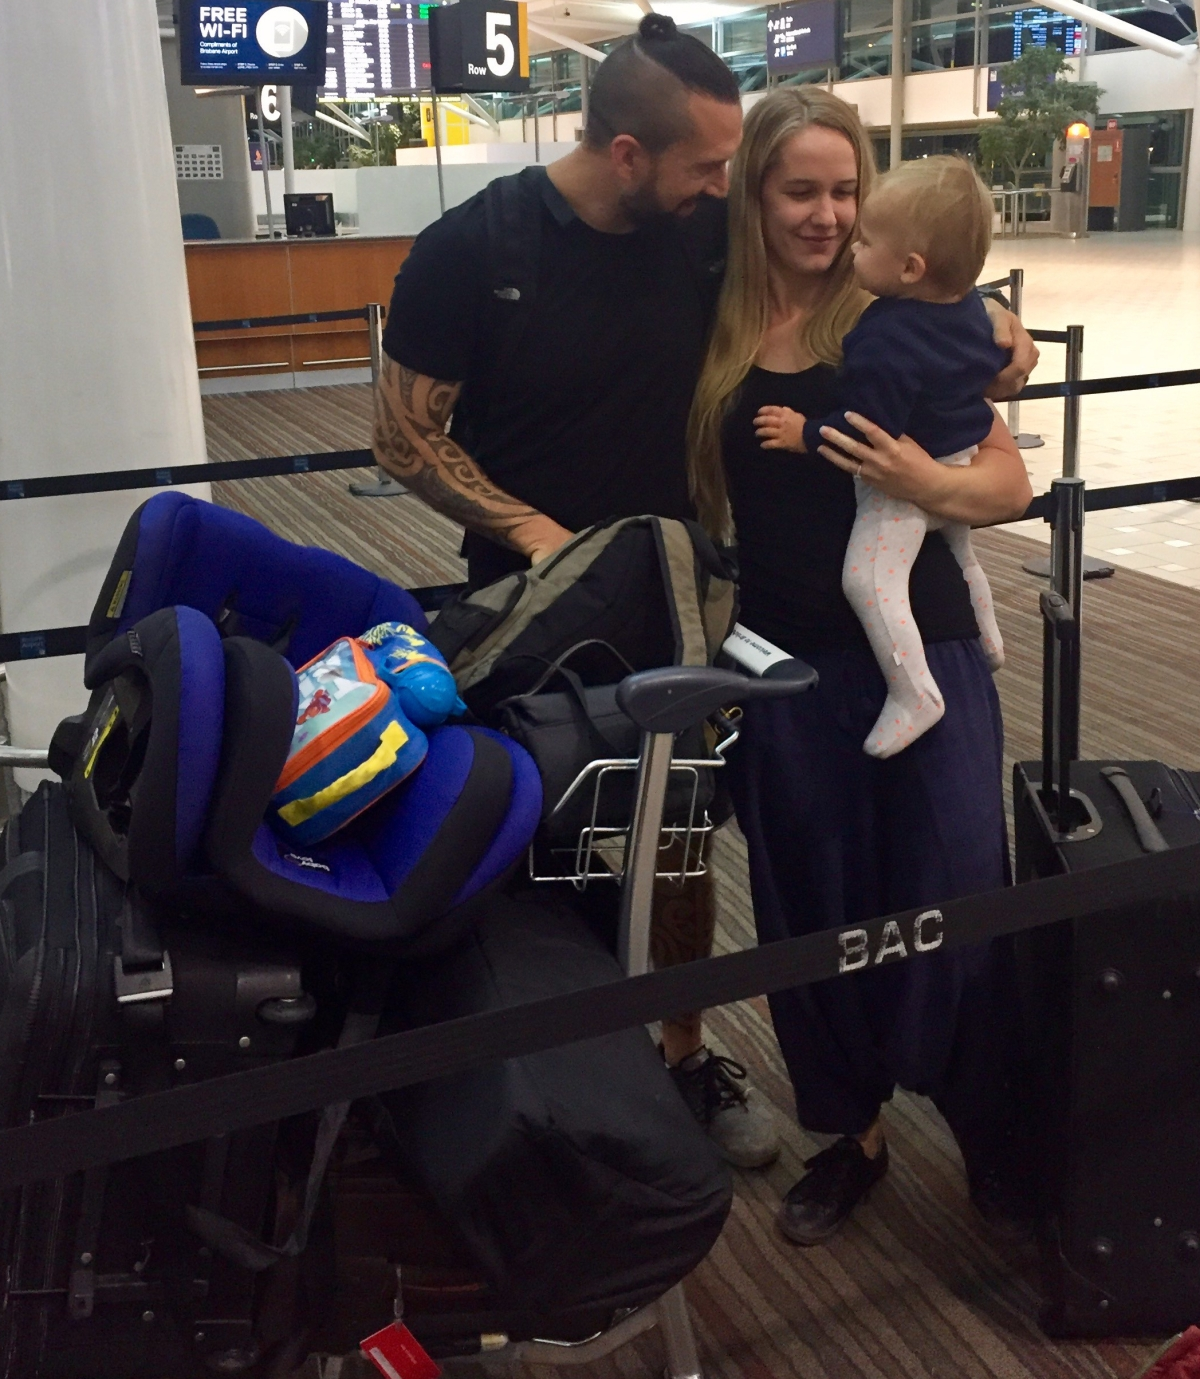 How to manage travelling with a toddler